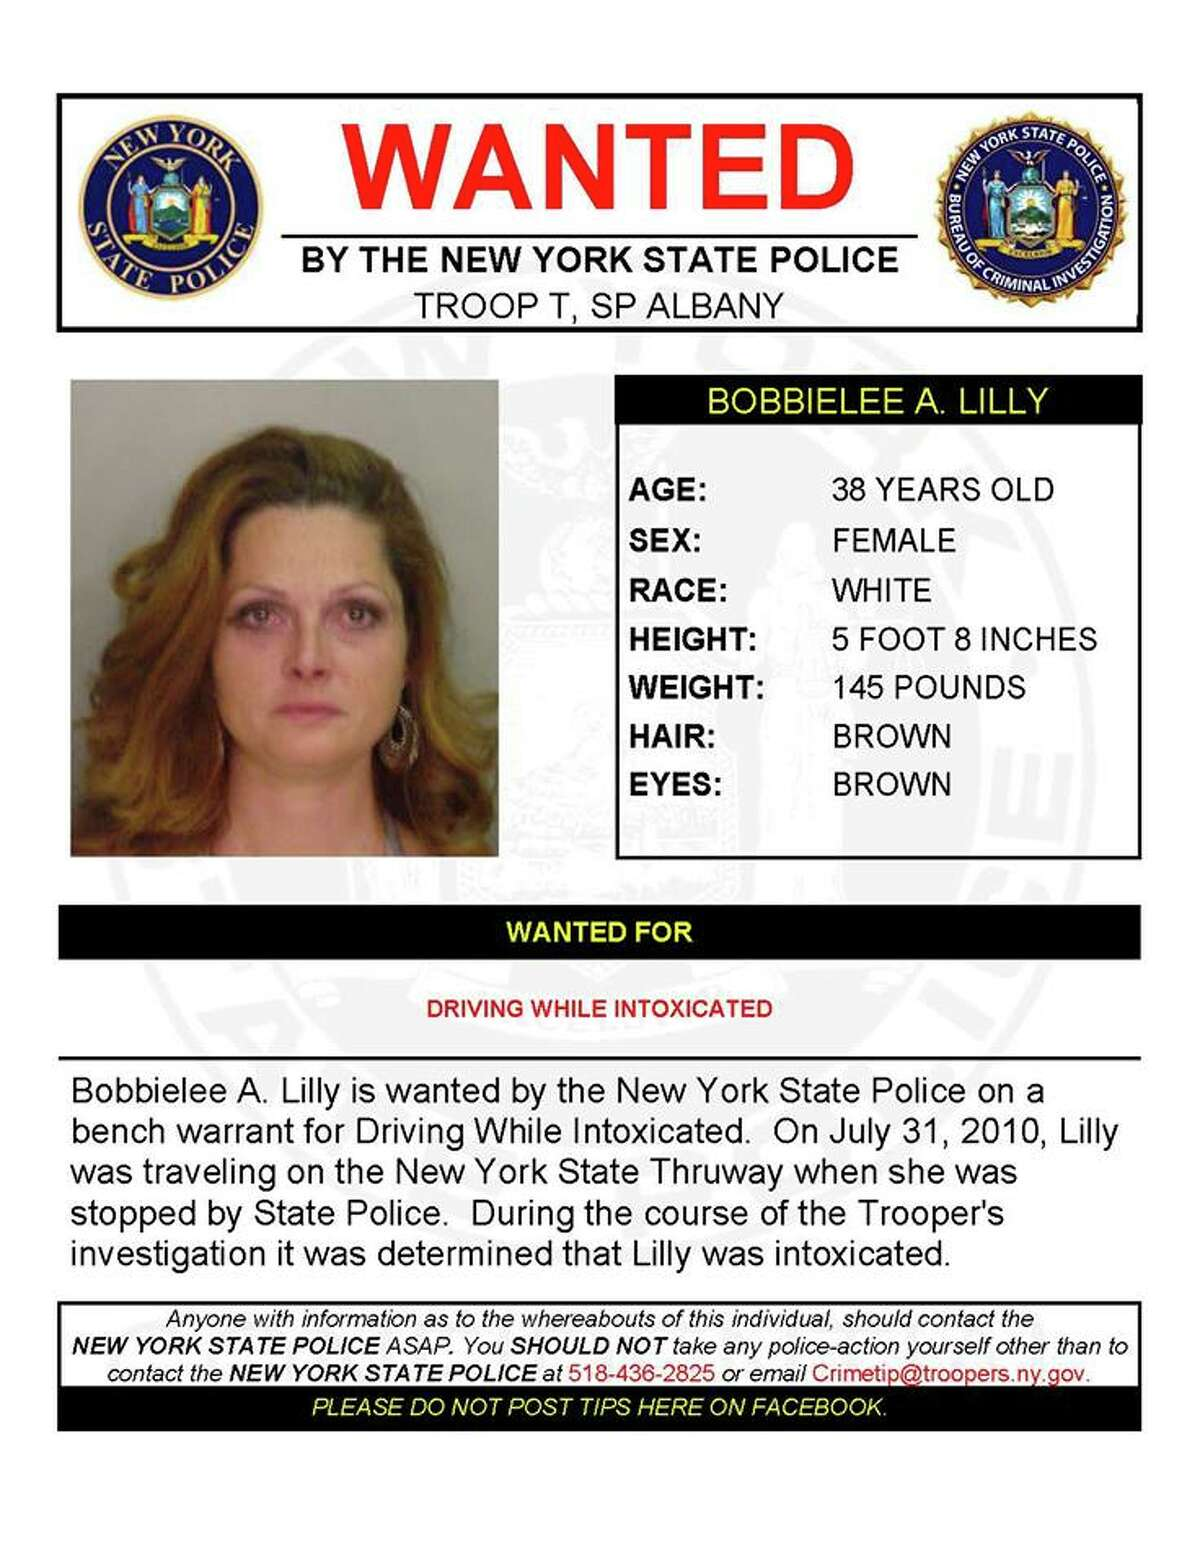 Bobbielee A. Lilly, 38, is wanted by State Police in Albany on a bench warrant for driving while intoxicated. On July 31, 2010, Lilly was driving on the Thruway when she was stopped by State Police. The trooper determined Lilly was intoxicated, State Police said.